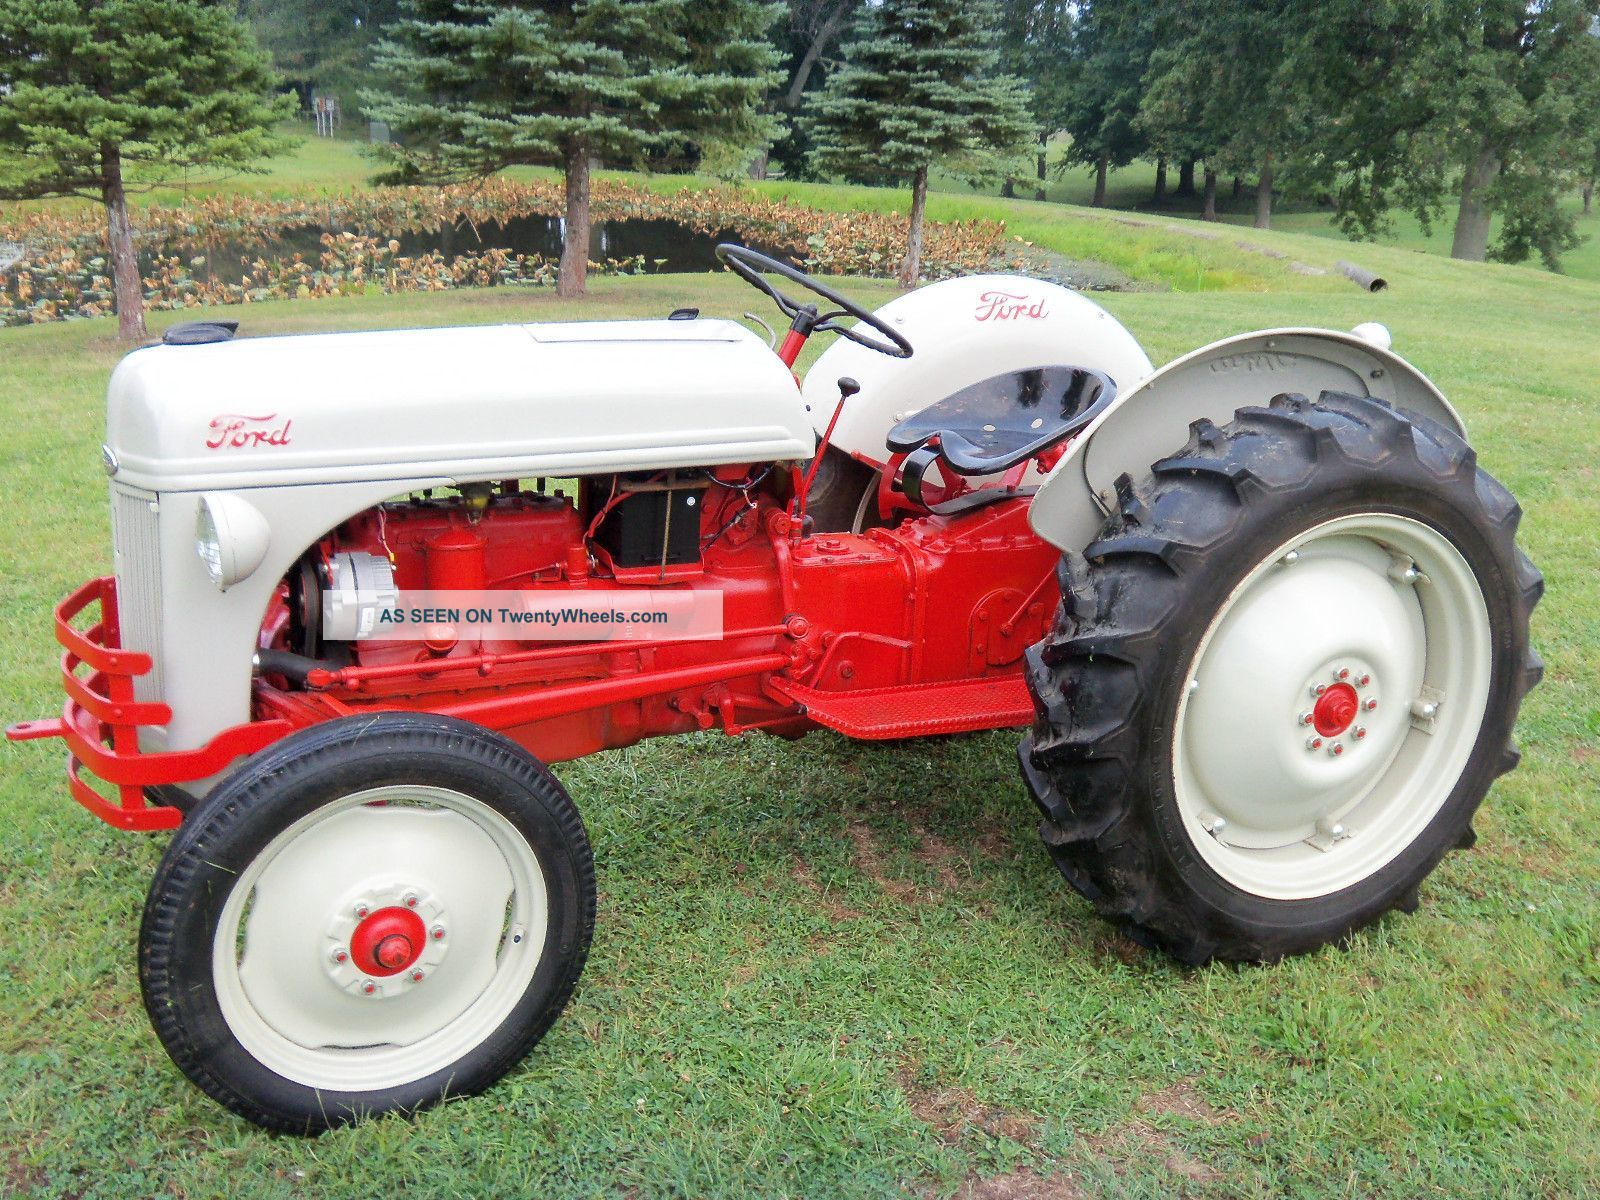 851de263e0afa2f1973ffd56a3c94192 381 best ford tractor images on pinterest ford tractors, antique  at crackthecode.co